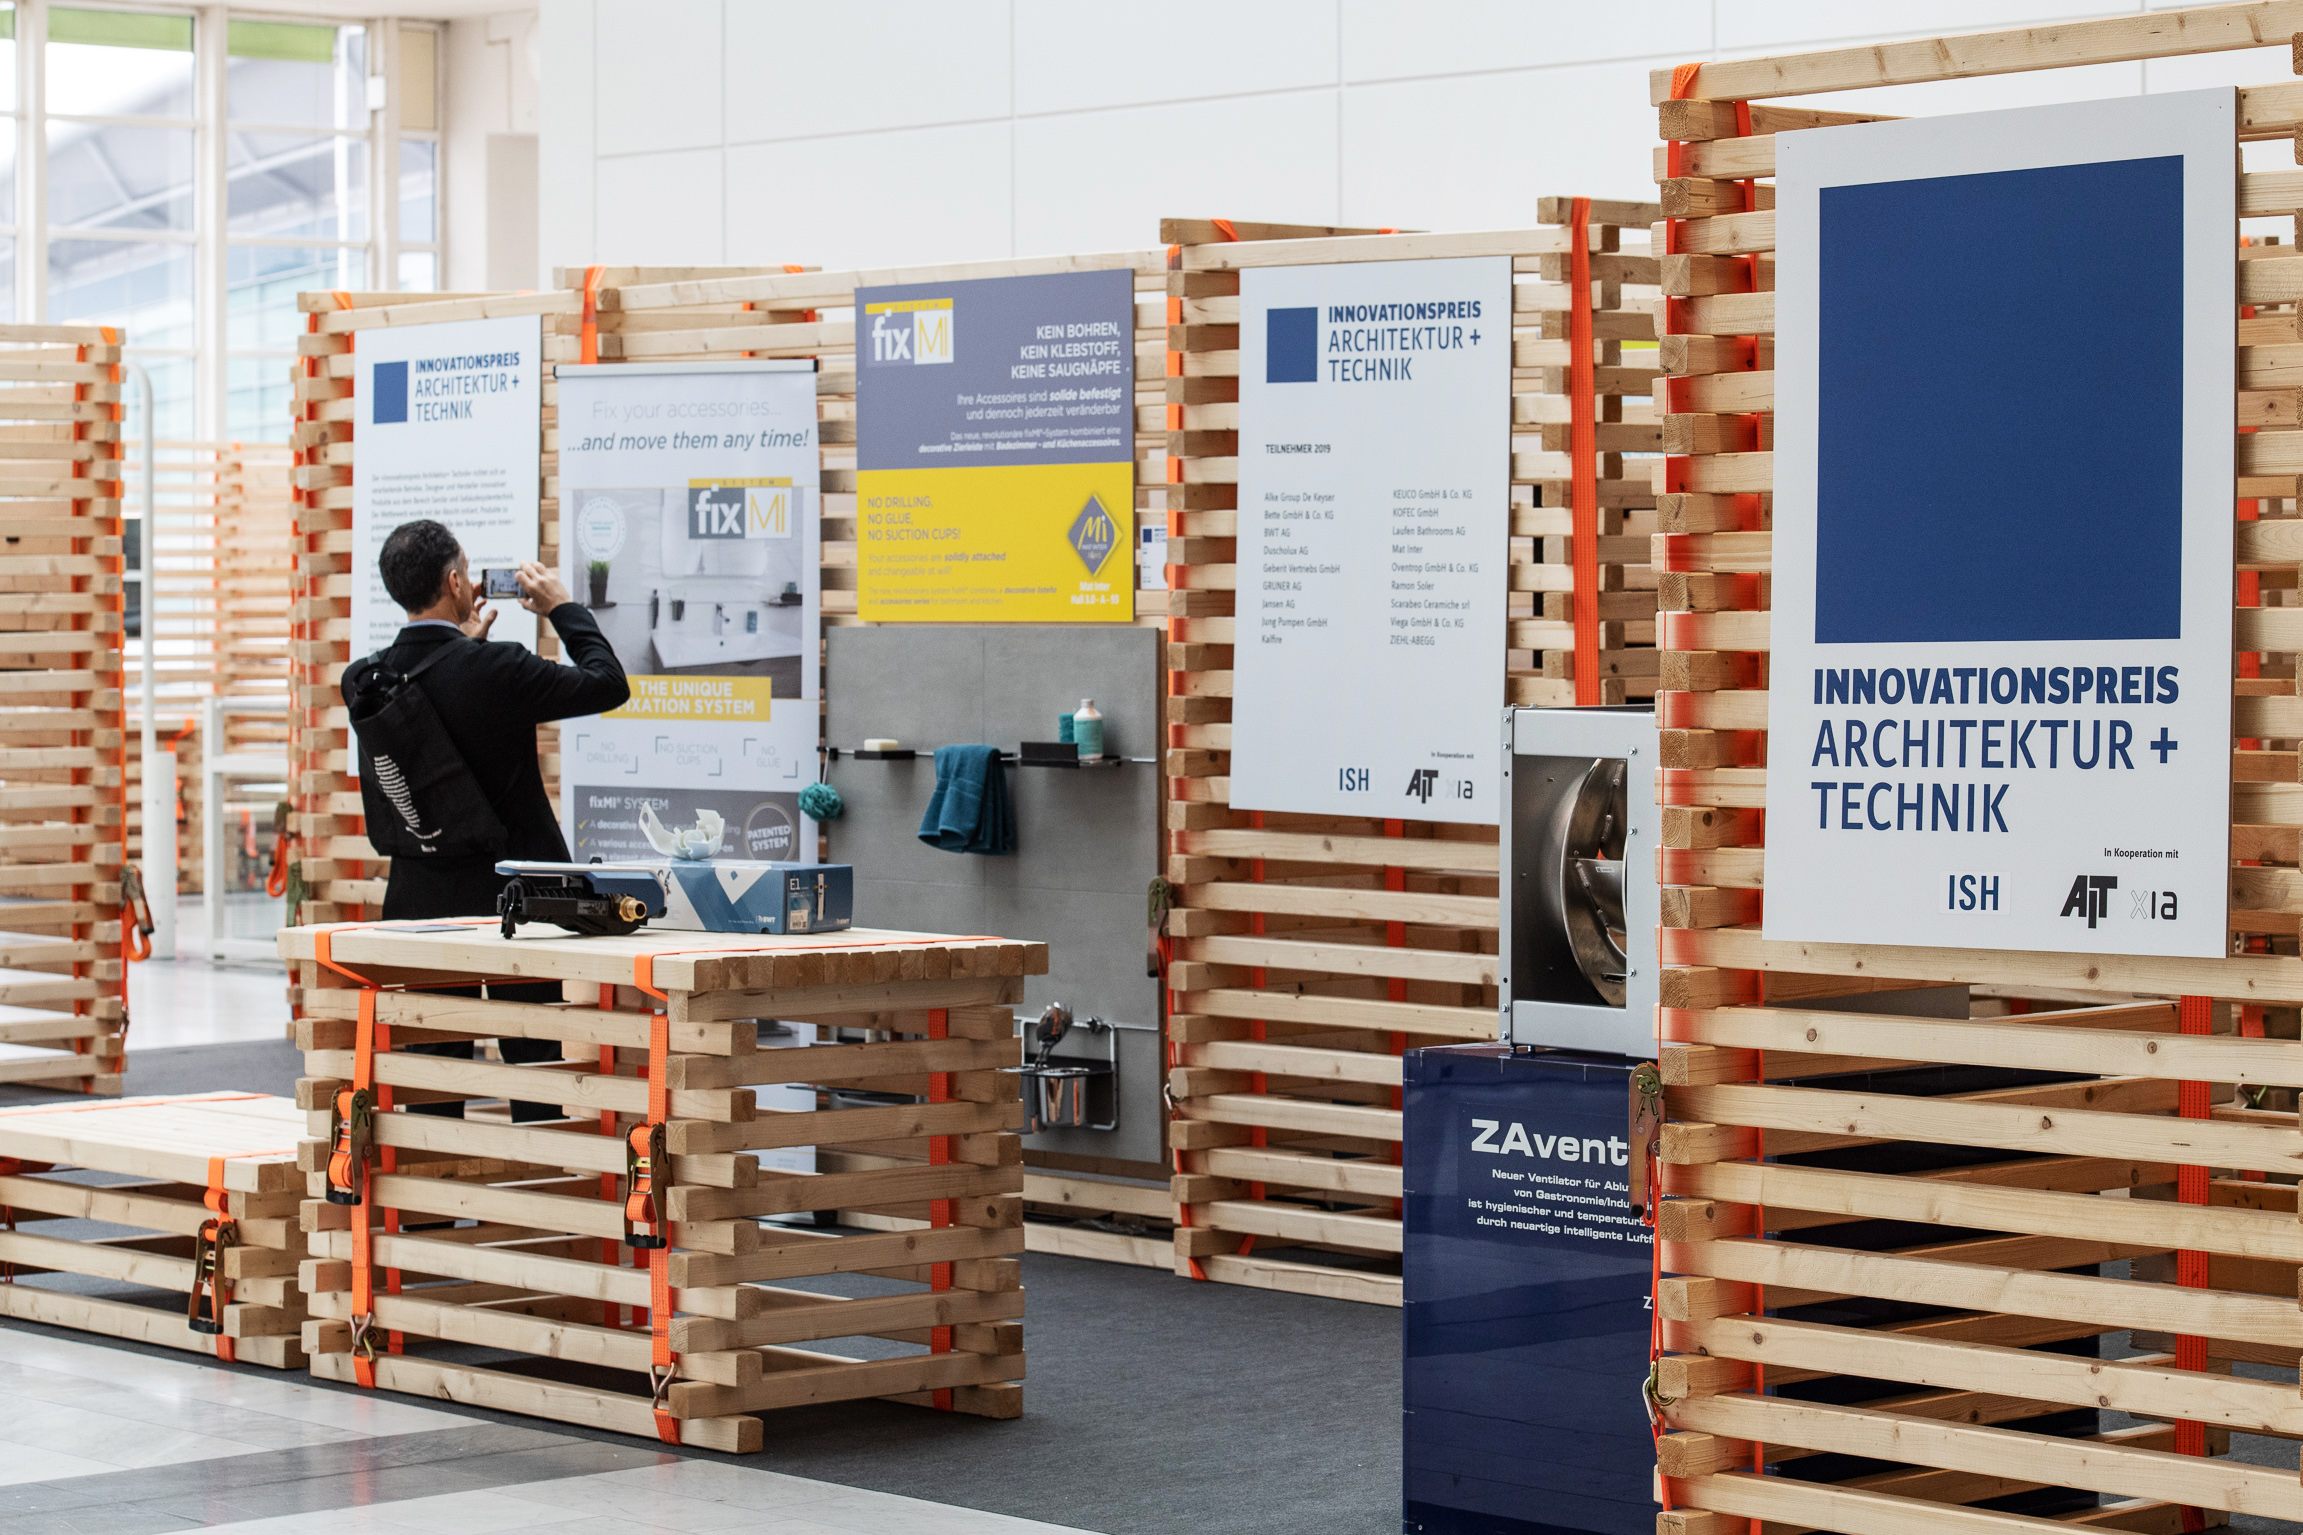 Innovationspreis Architektur + Technik 06